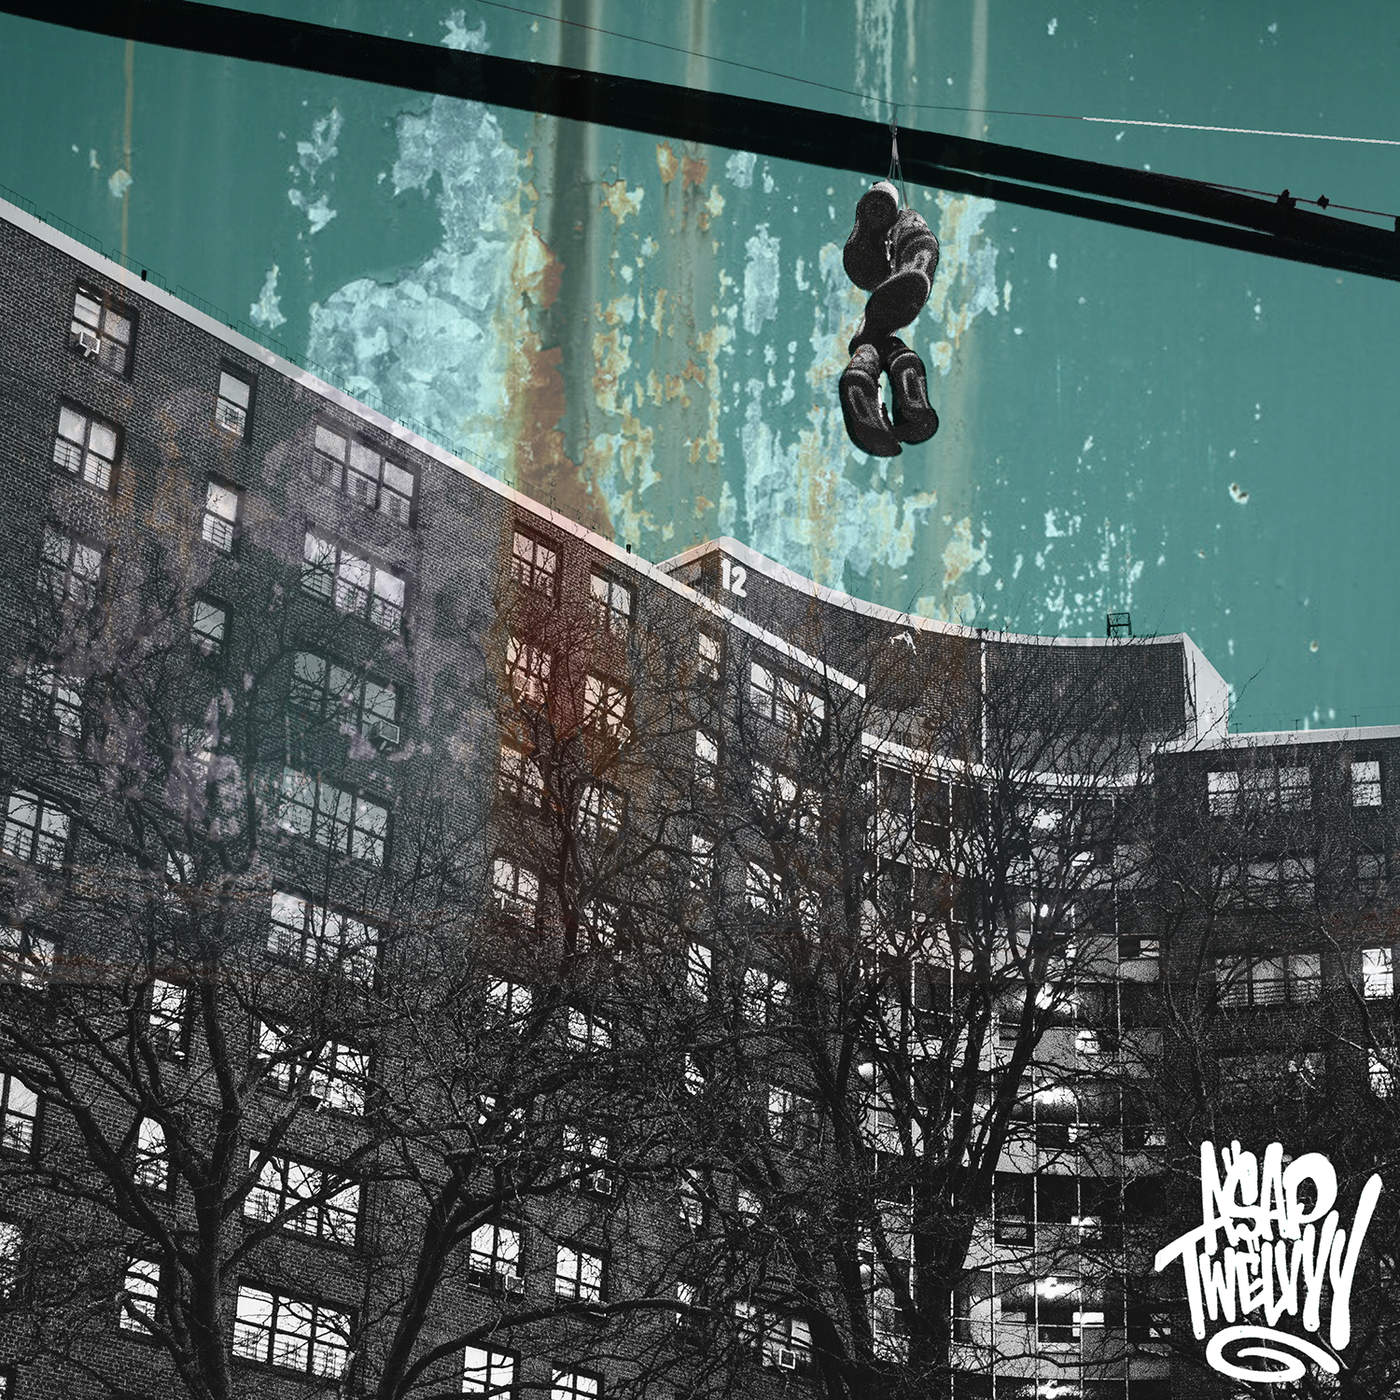 Stream @AsapTwelvyy's '12' debut album feat. @asvpxrocky, @ASAPferg, @joeyBADASS: https://t.co/740aGw8Uub https://t.co/gCxmlOnzpa